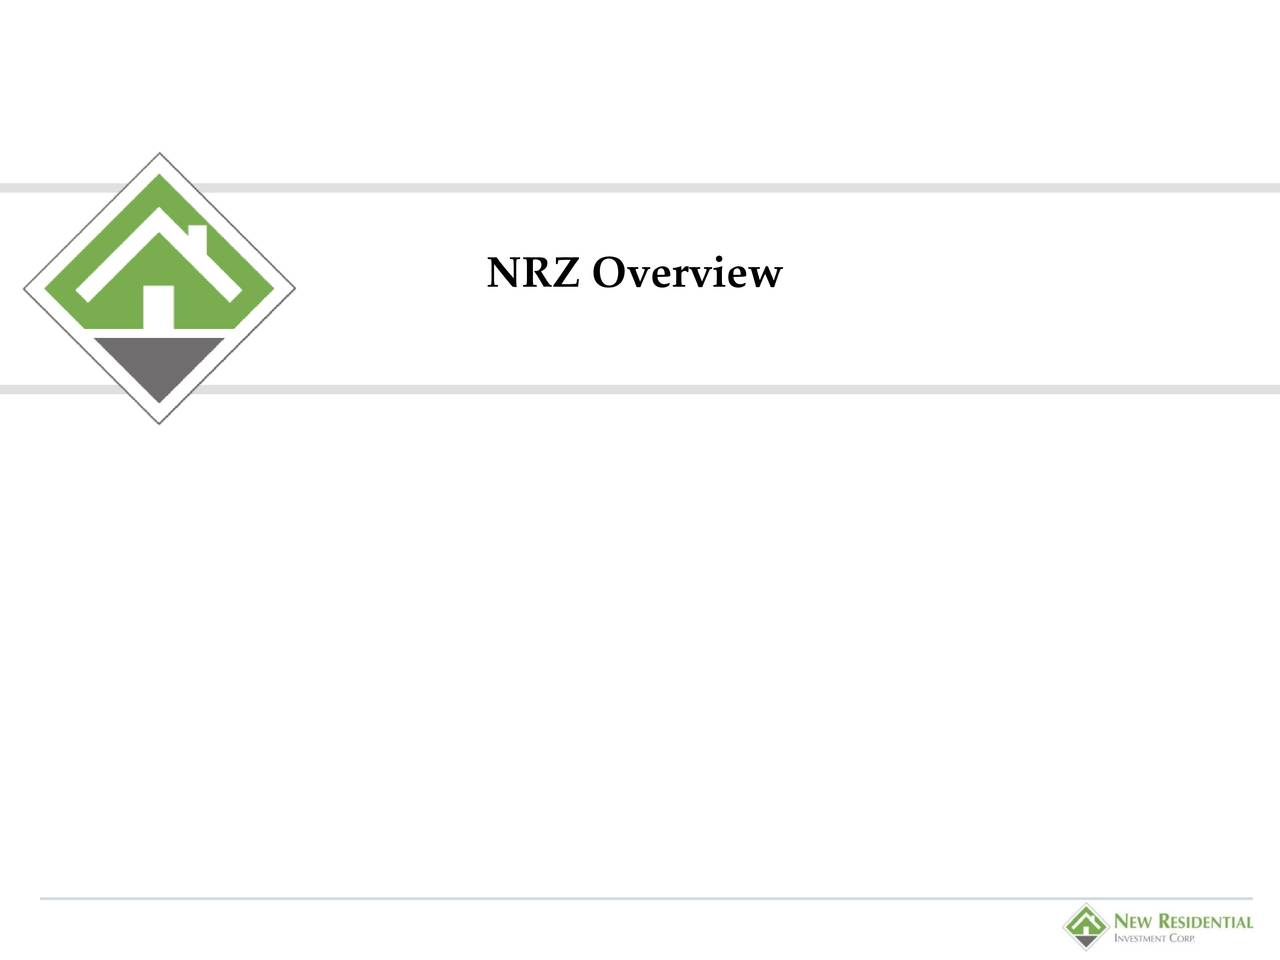 NRZ Overview